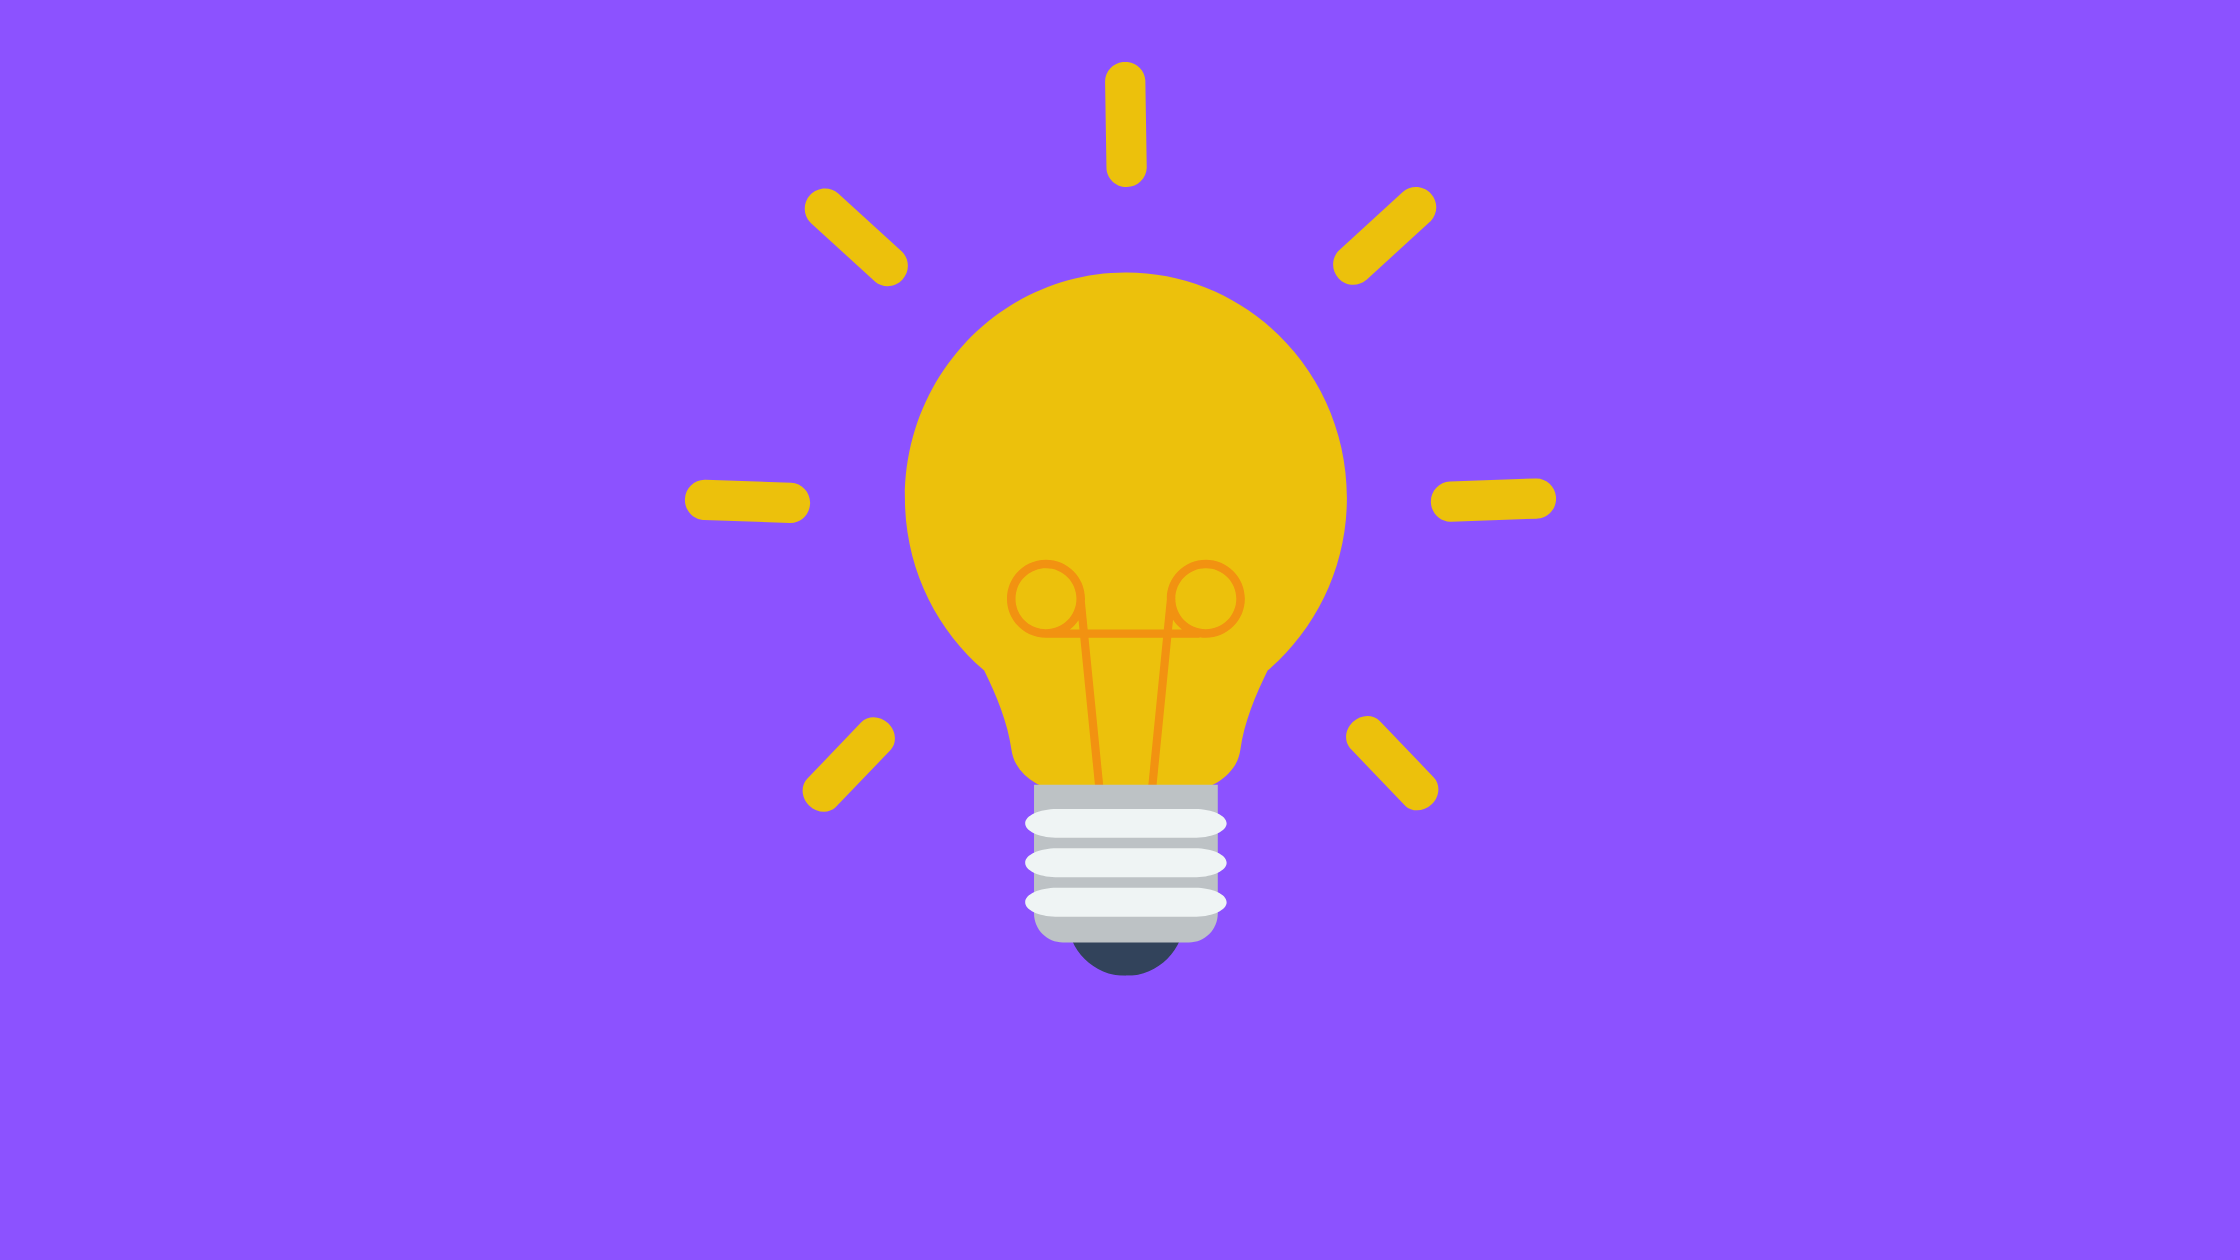 Illustration of a bright yellow light bulb